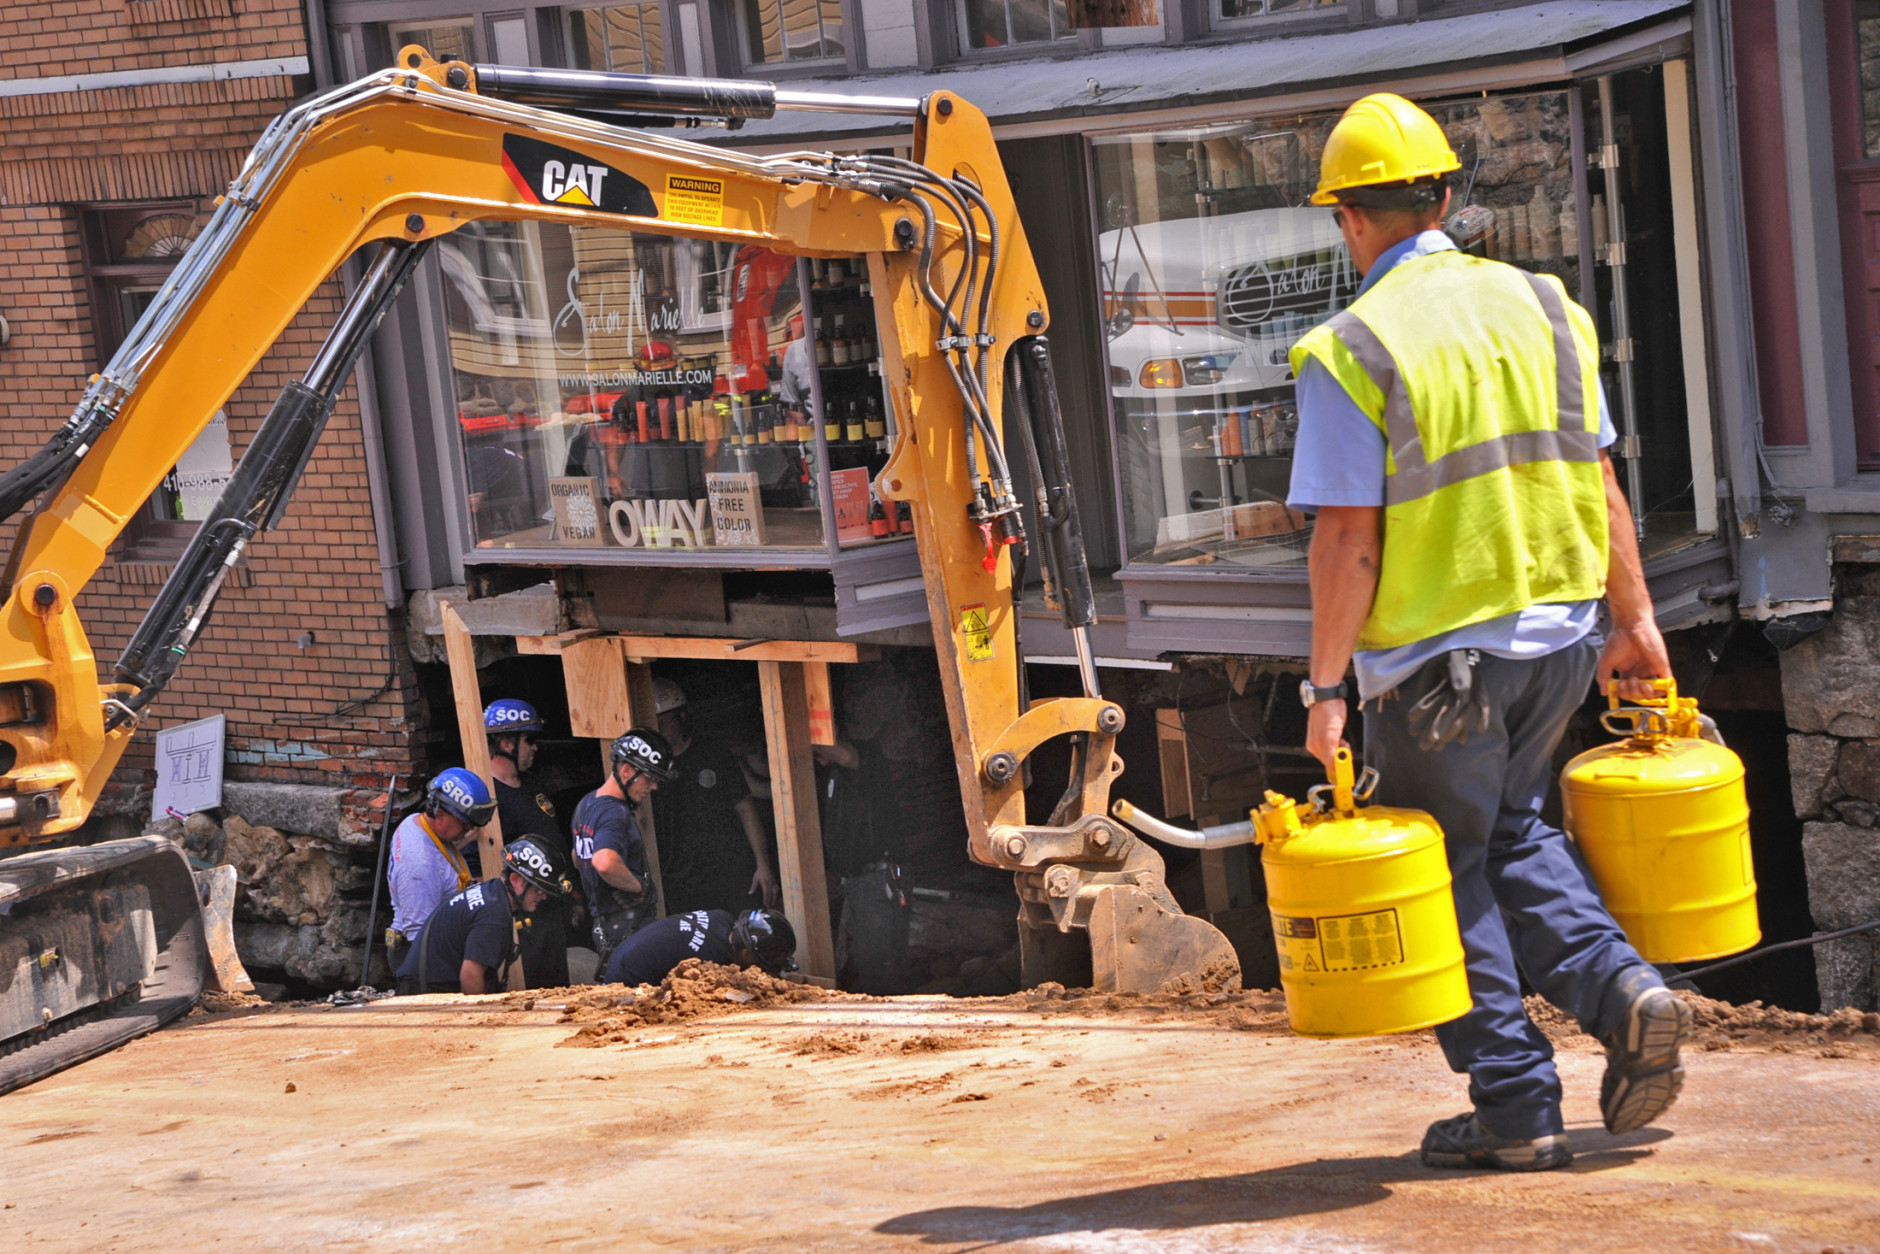 Workers stabilize a building on Main Street after the sidewalk caved in due to overnight flooding in Ellicott City, Md., Sunday, July 31, 2016. Historic, low-lying Ellicott City, Maryland, was ravaged by floodwaters Saturday night, killing a few people and causing devastating damage to homes and businesses, officials said. (Amy Davis/The Baltimore Sun via AP)